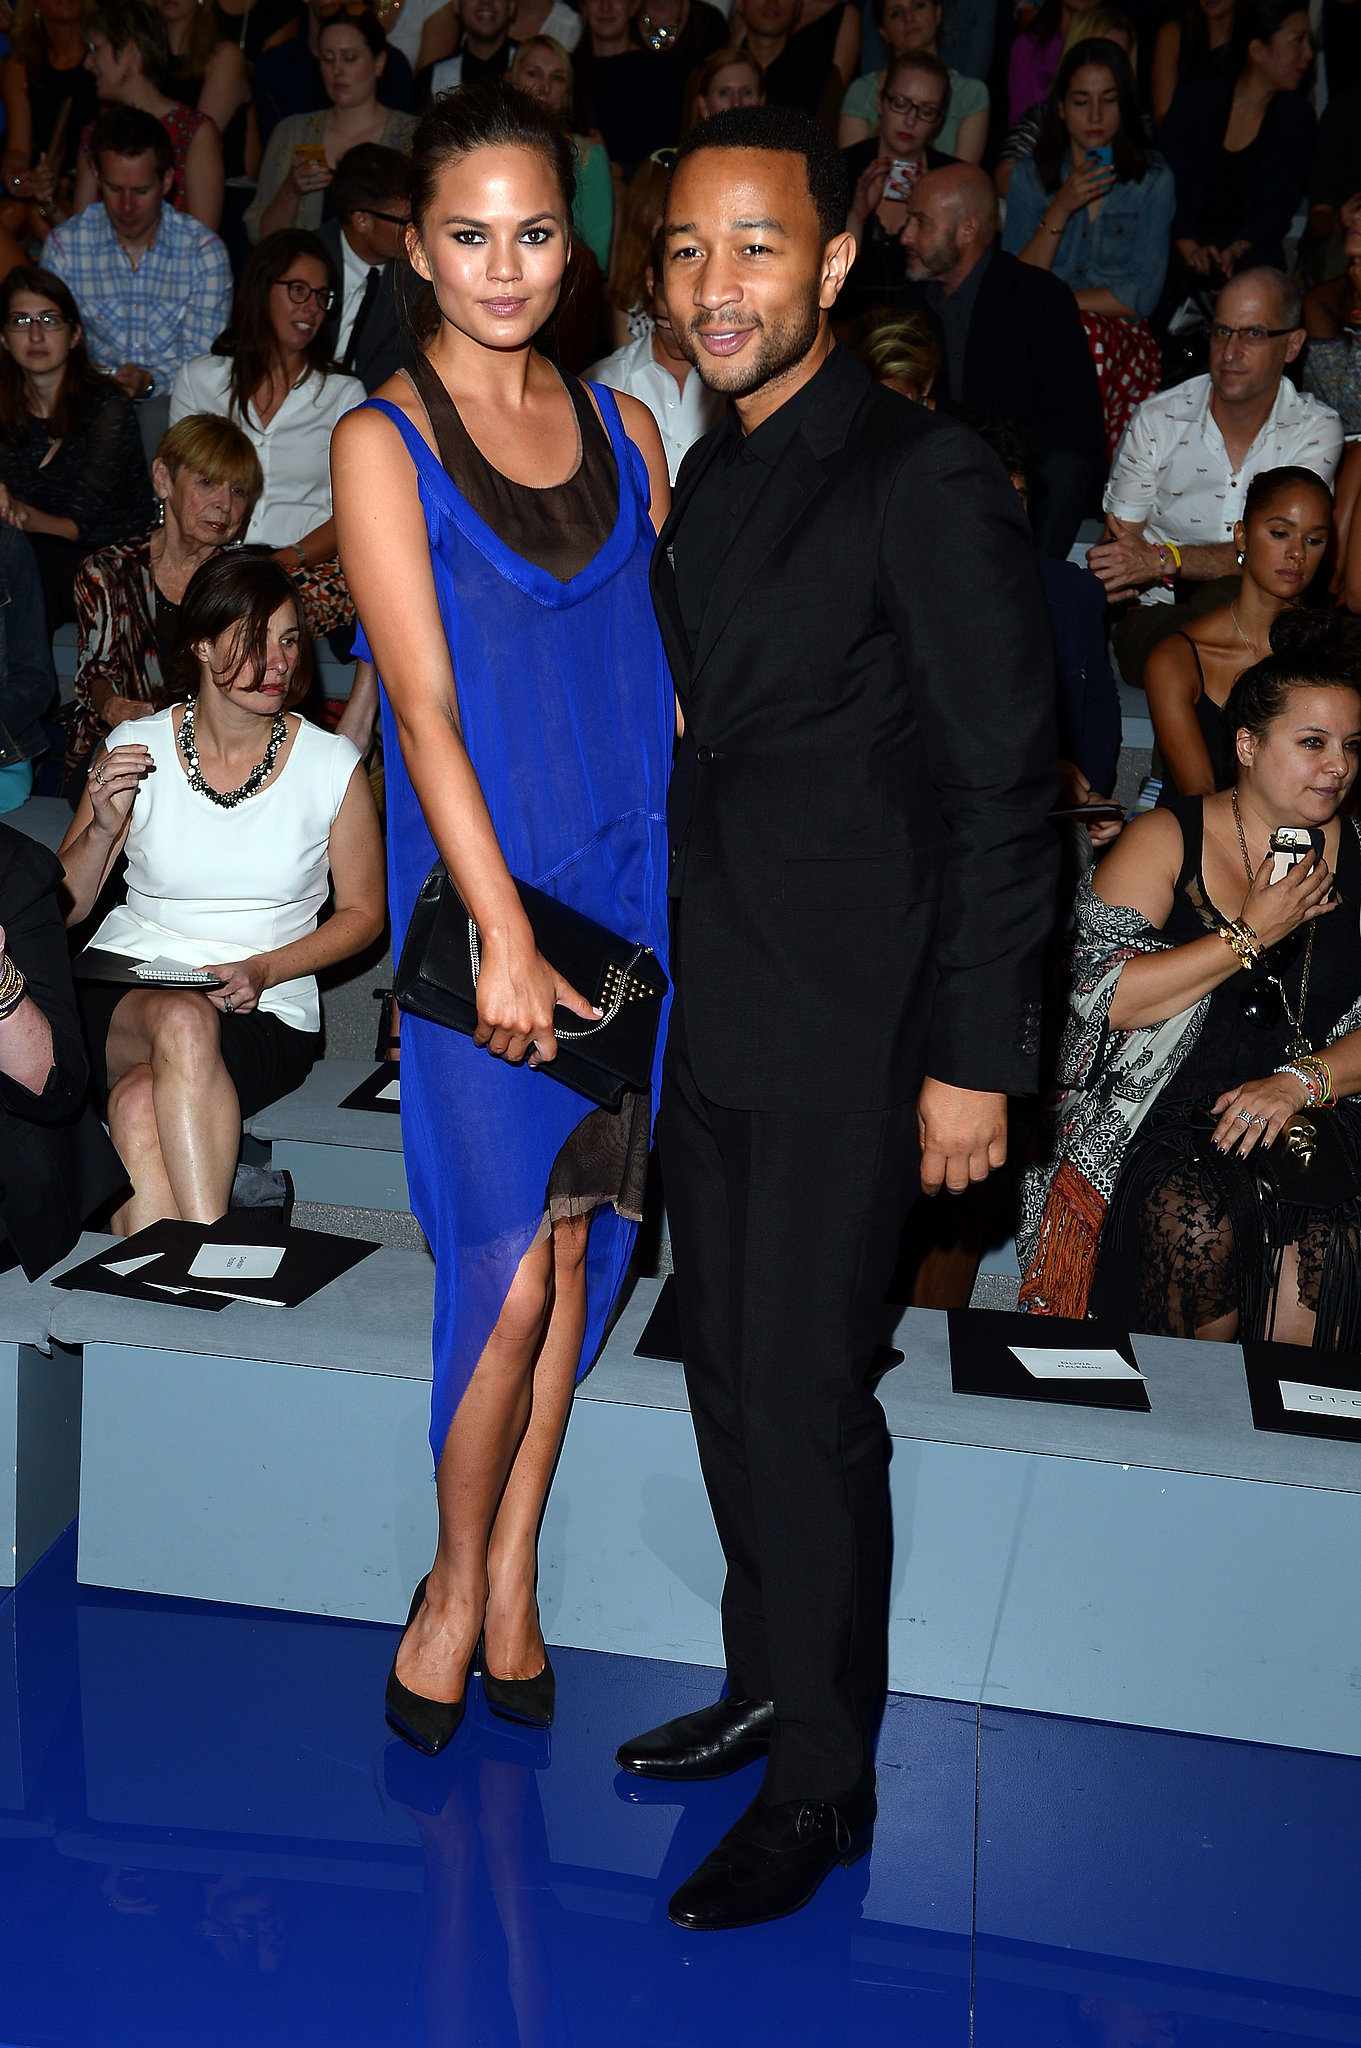 Chrissy Teigen popped in an electric blue dress while posing with John Legend at the Vera Wang show